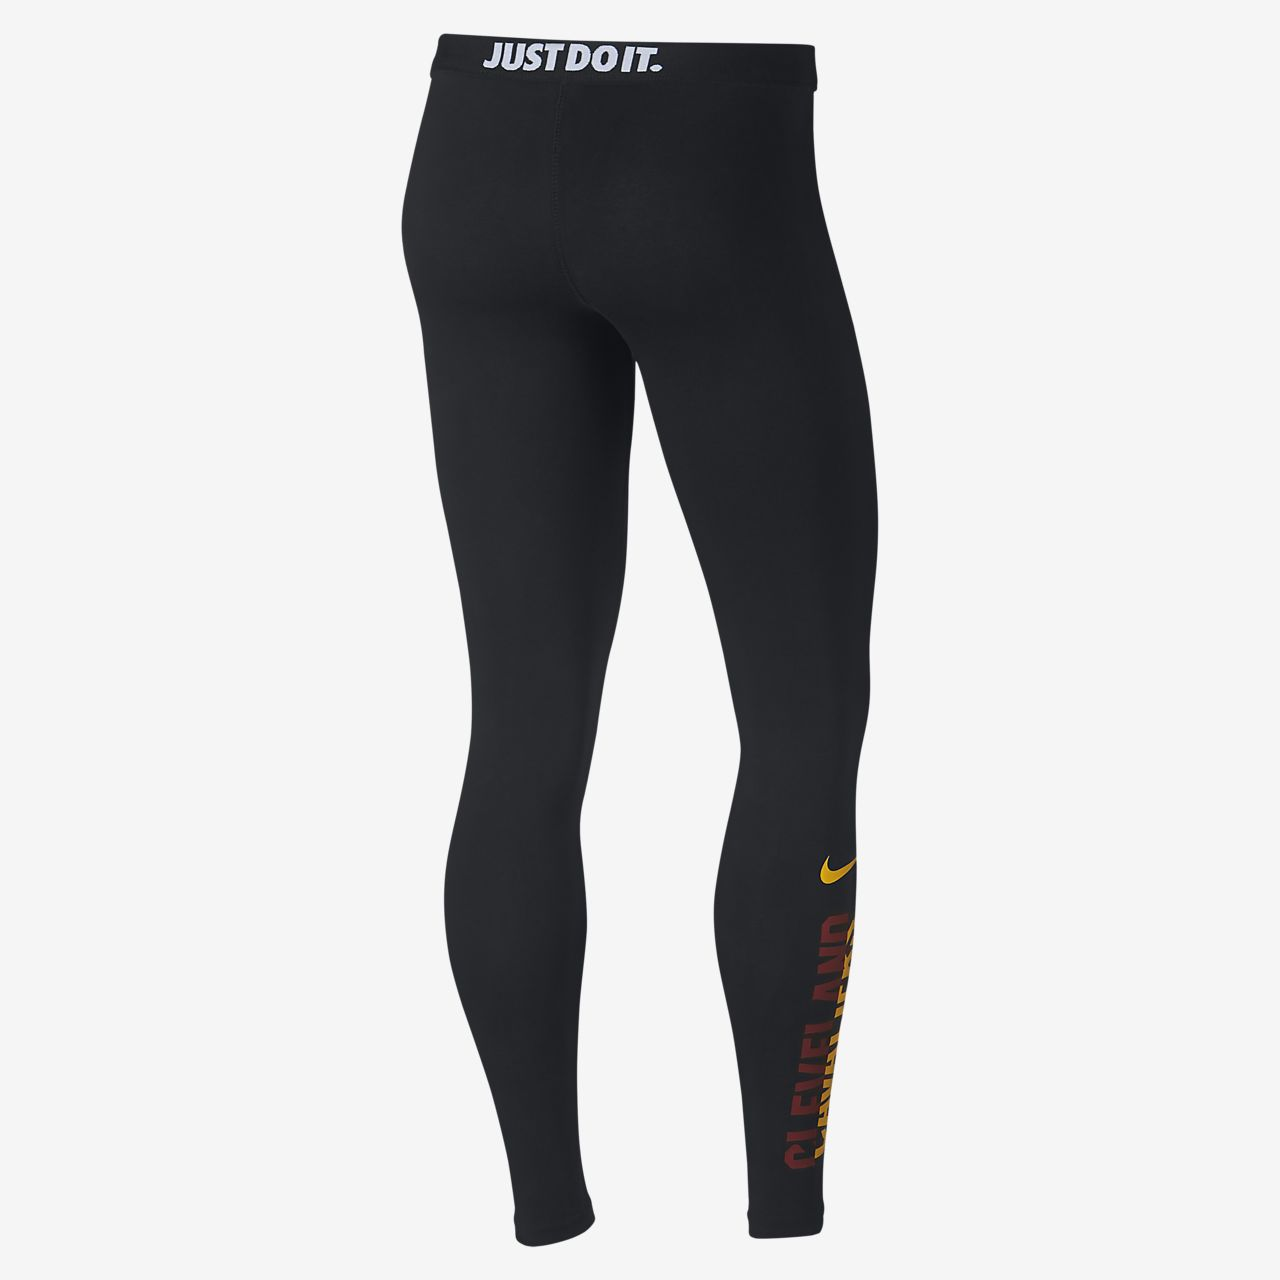 ... Cleveland Cavaliers Nike Leg-A-See Women's NBA Tights